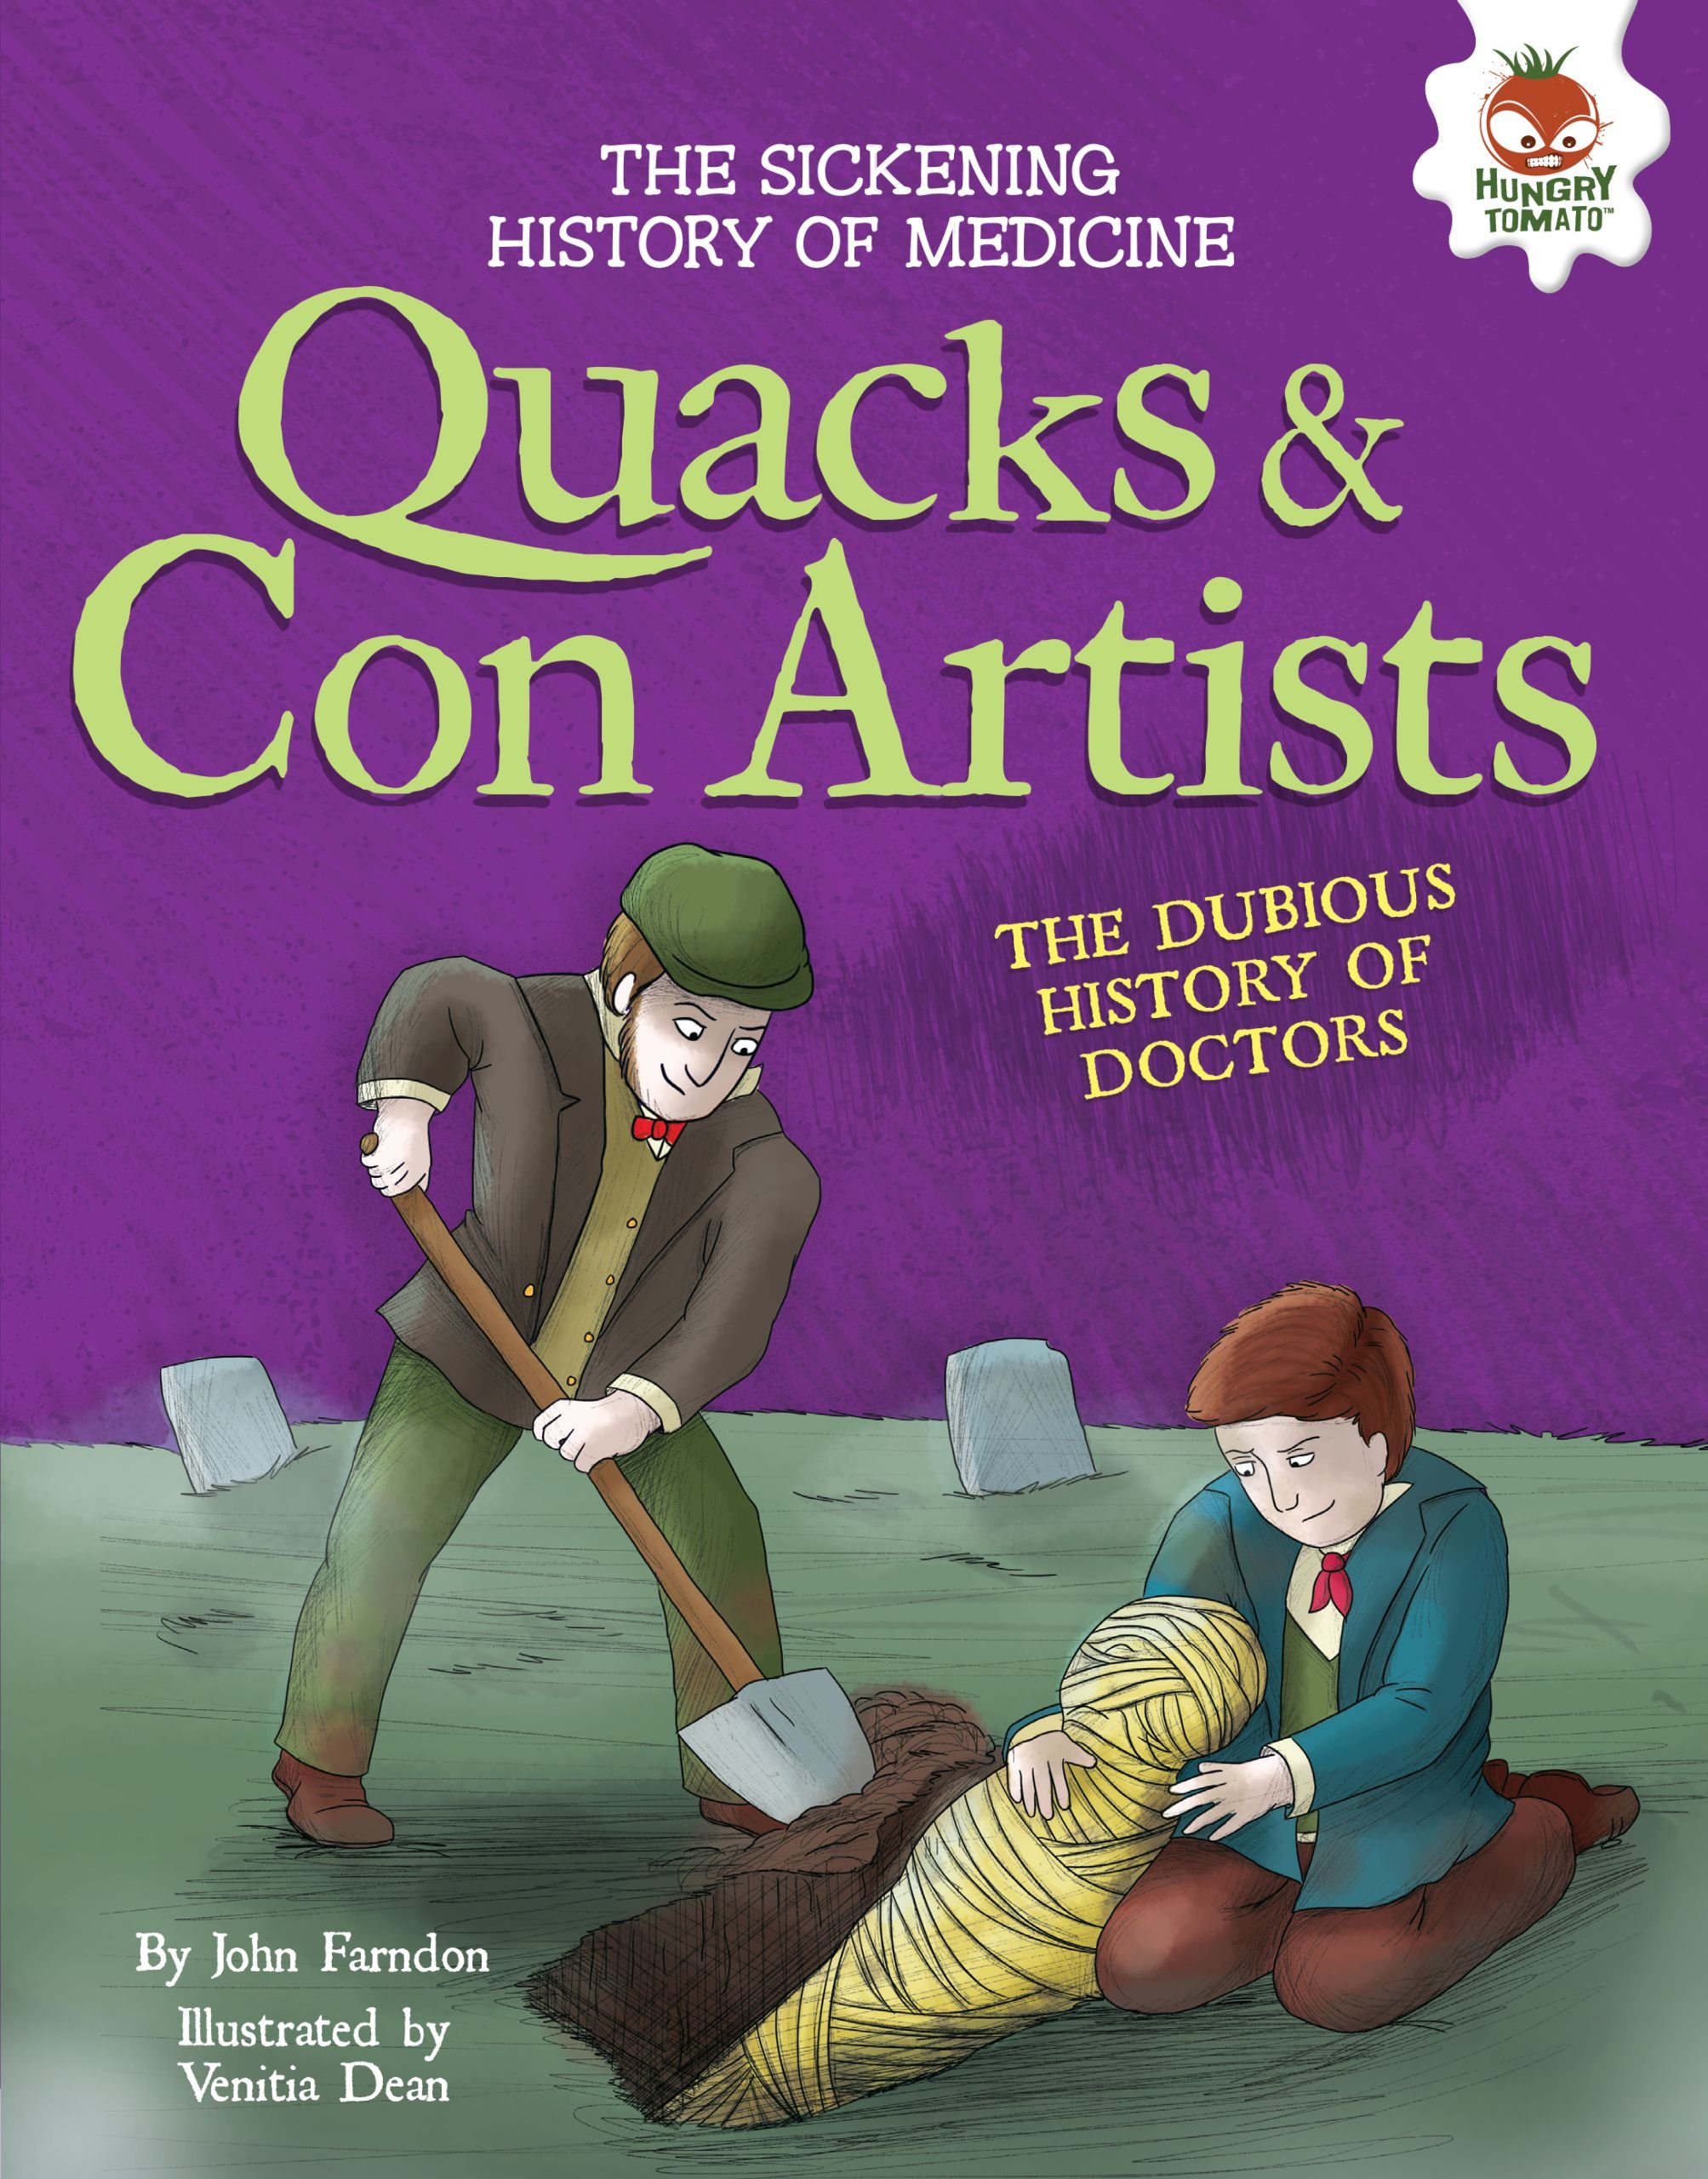 Download Quacks & Con Artists: The Dubious History of Doctors (The Sickening History of Medicine) pdf epub